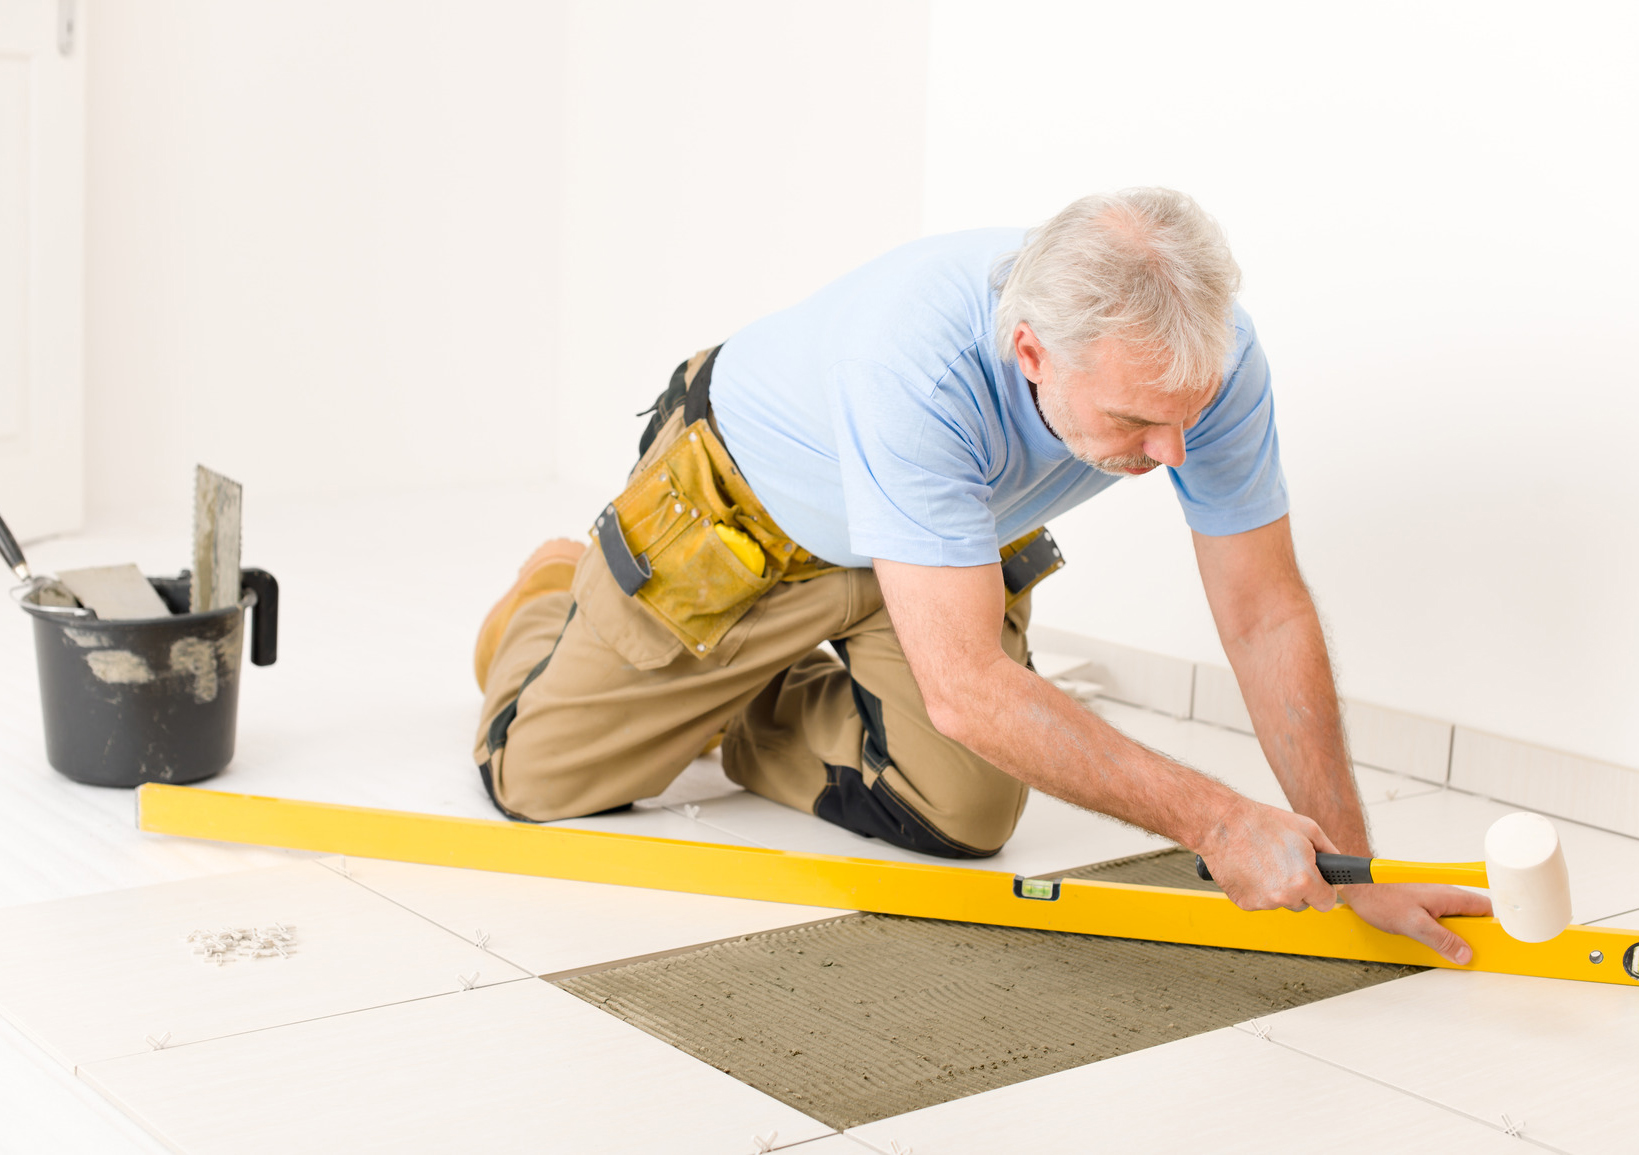 photodune-227218-home-improvement-renovation-handyman-laying-ceramic-tile--zugeschnittenjpg